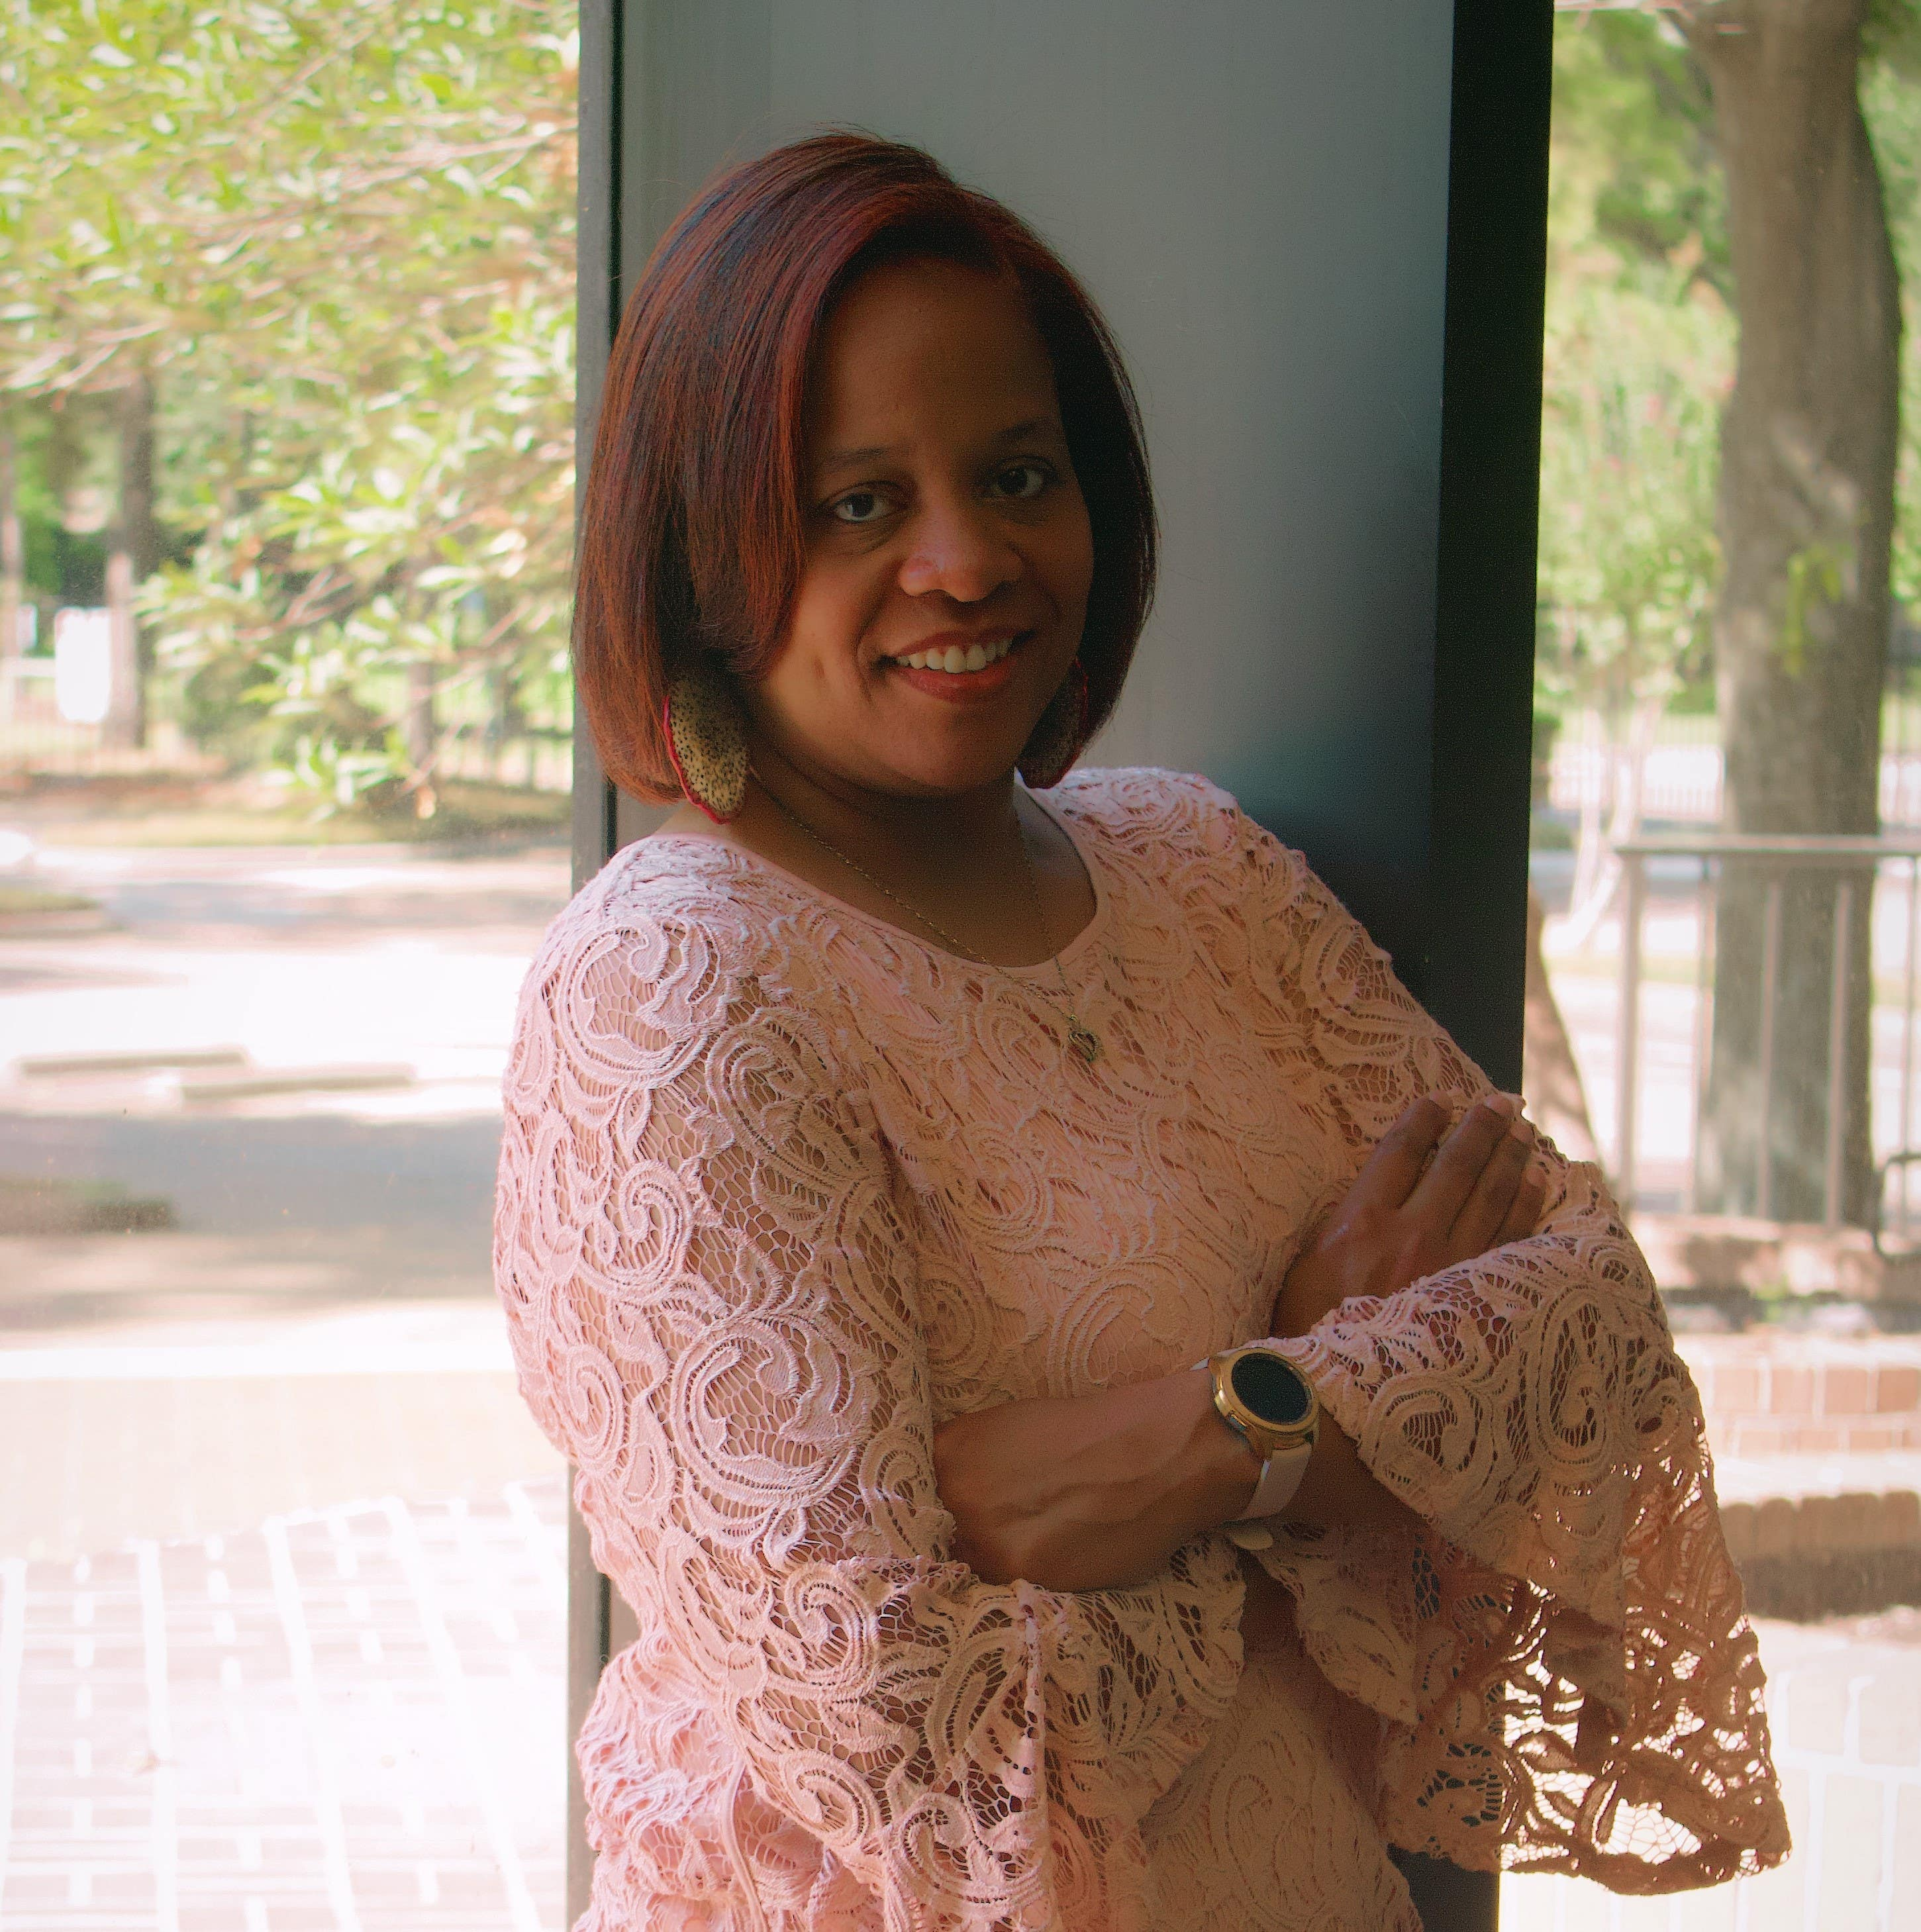 Course founder TaJuana Antwine stands by a window in a pink lace blouse